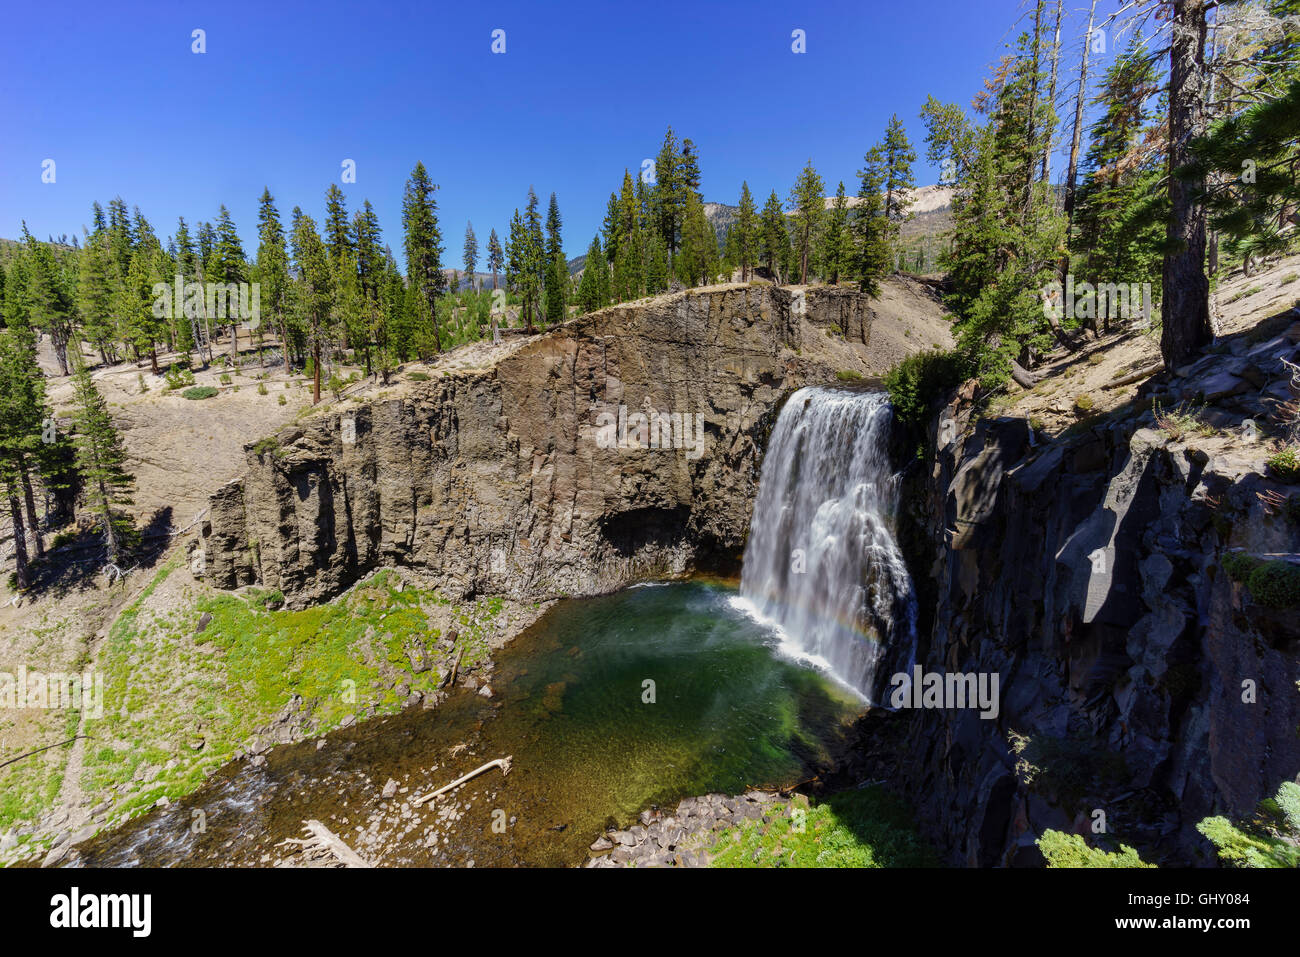 The beautiful Rainbow Fall of Devils Postpile National Monument - Stock Image